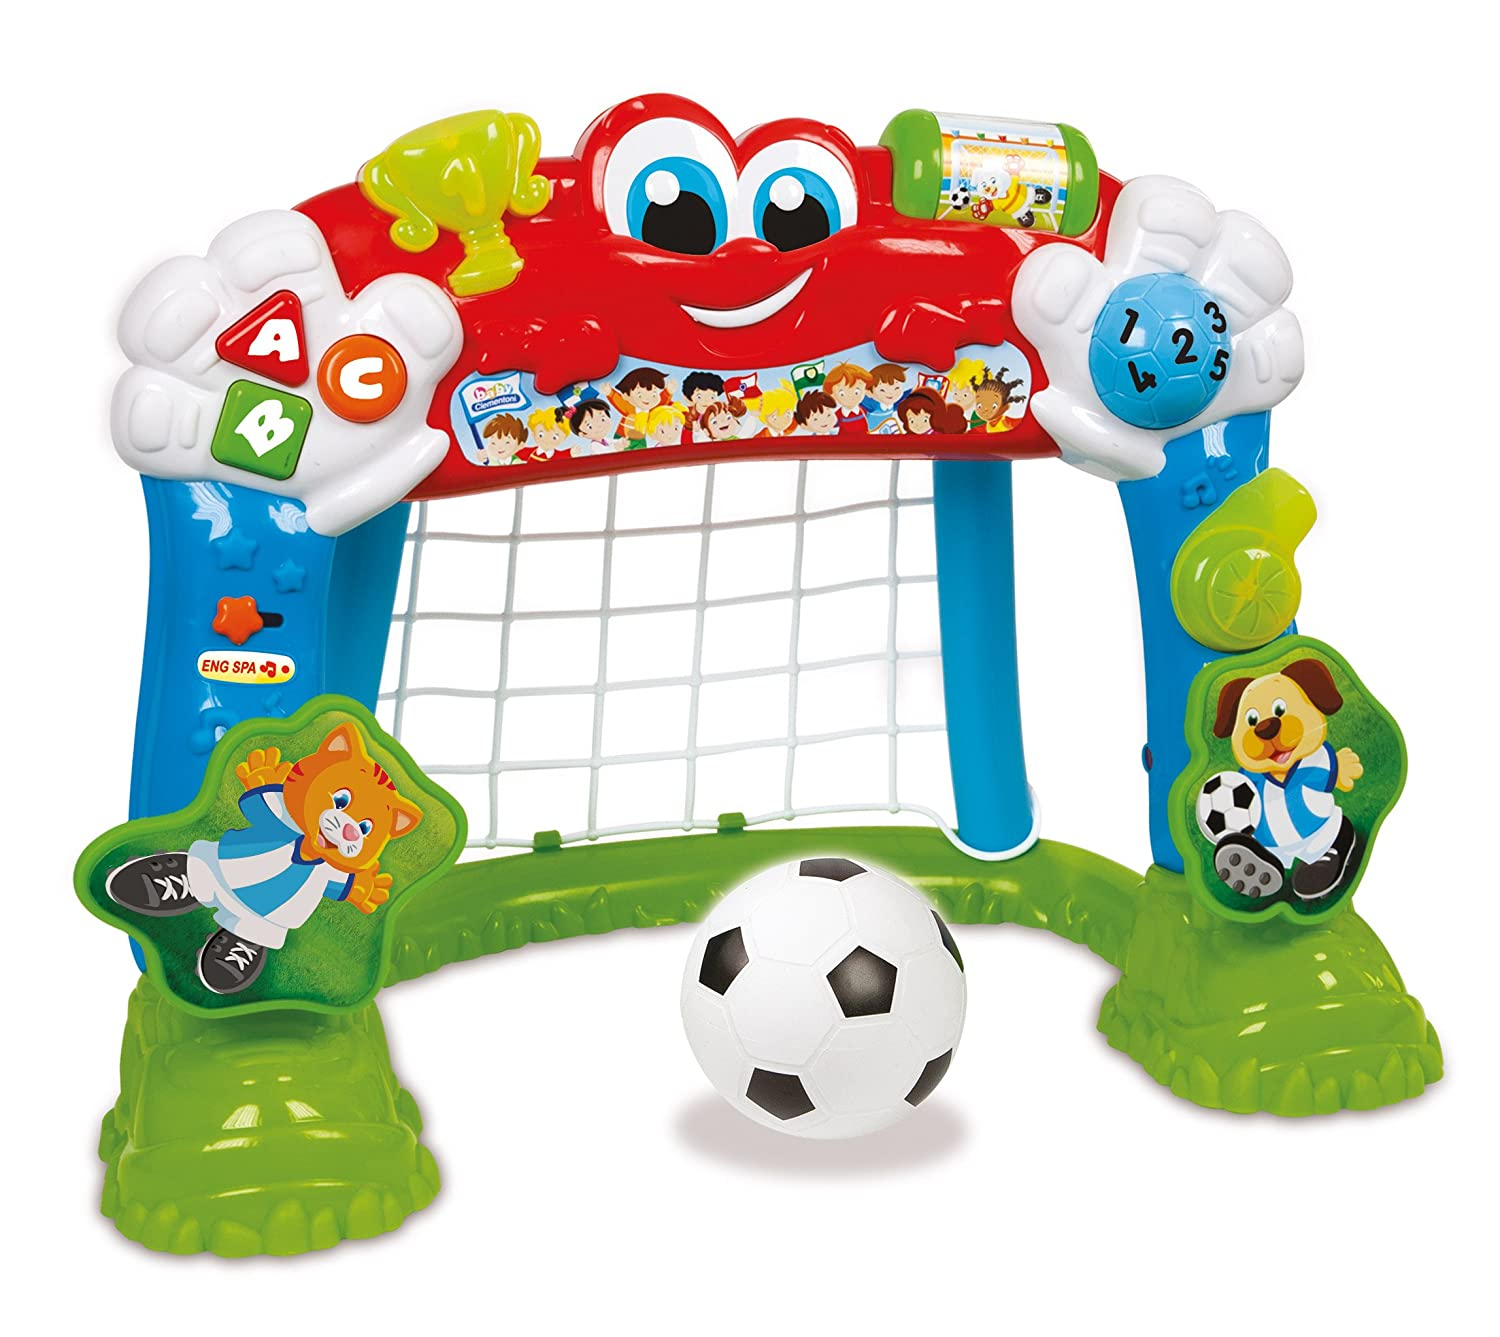 Clementoni Baby World Cup Winner 2 in 1 Talking & Singing Goal